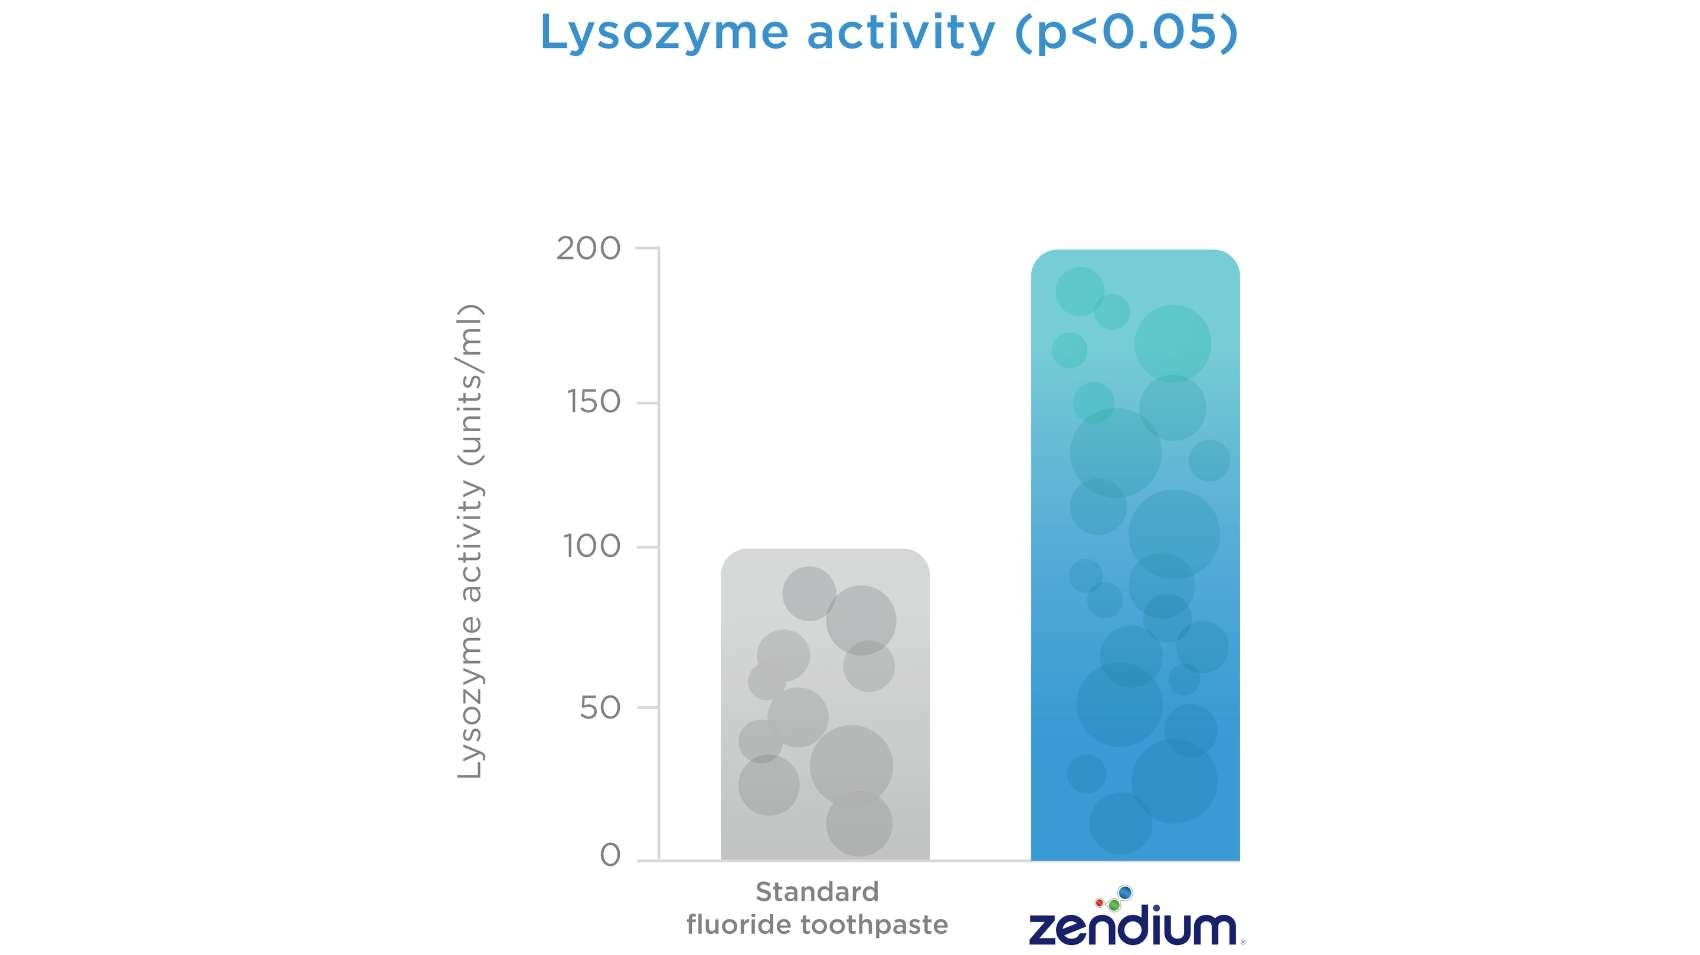 Graph showing lysozyme activity